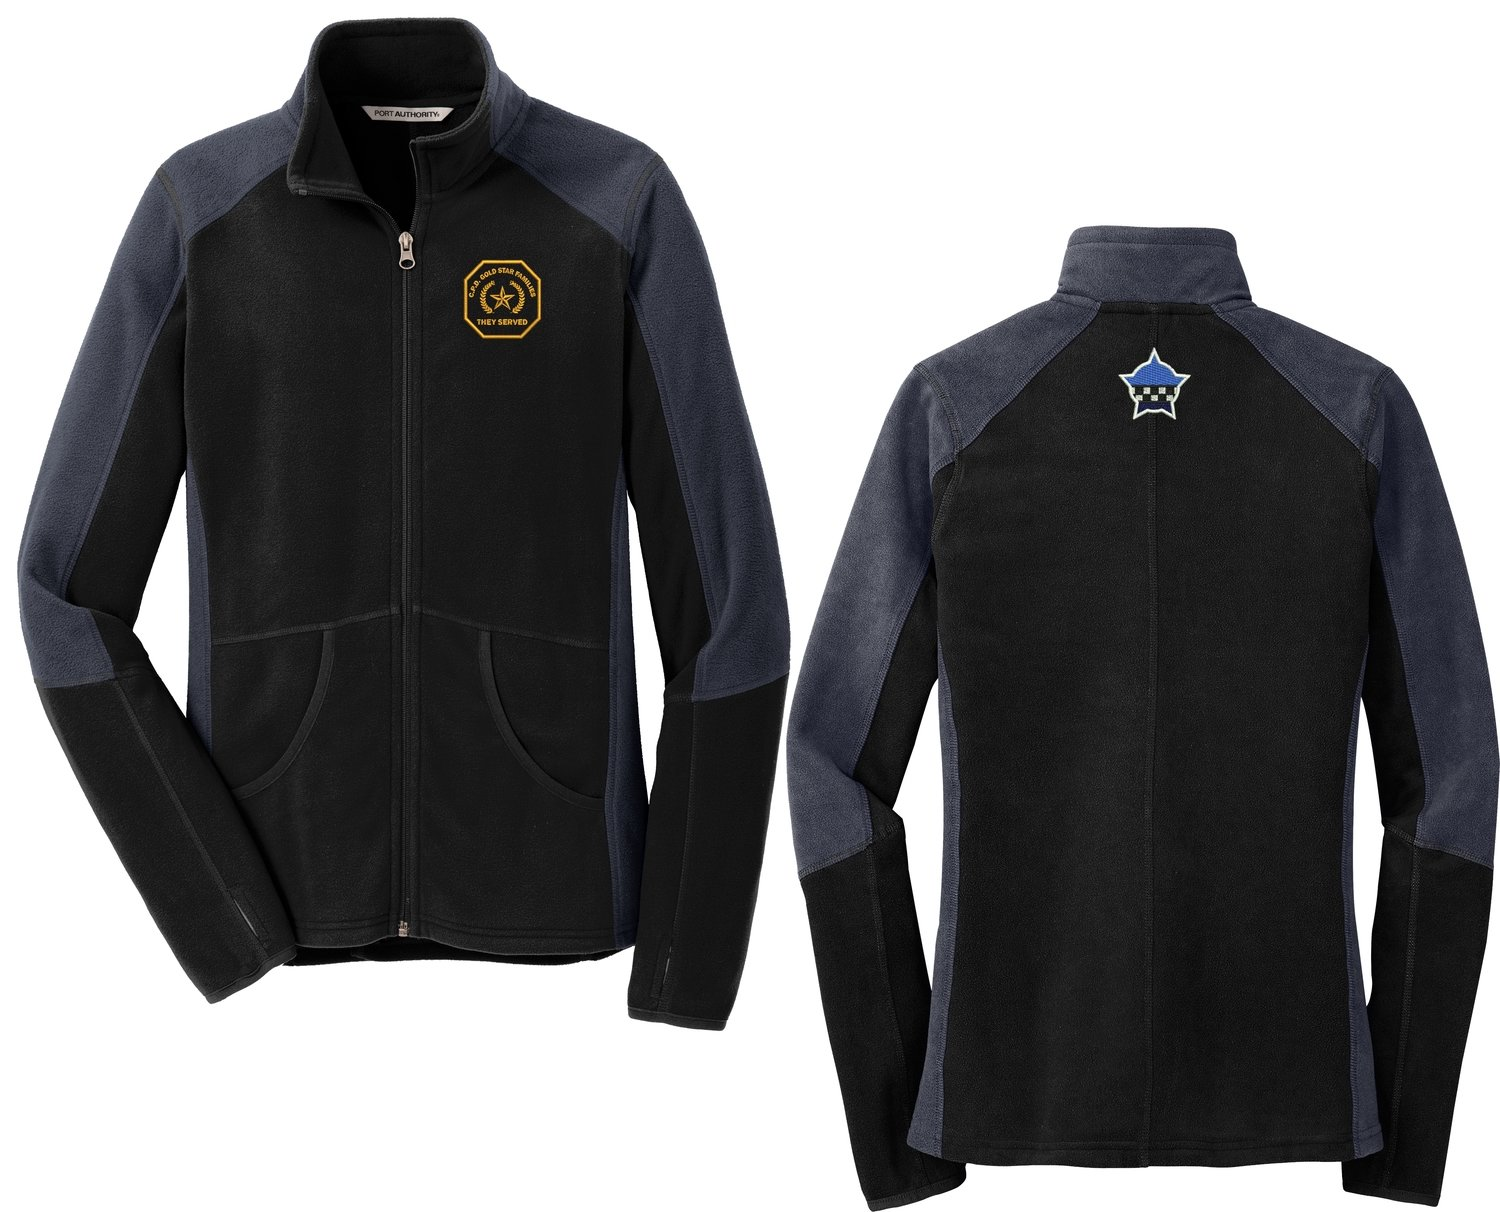 Gold Star Family Colorblock Microfleece Jacket Black/Grey F230